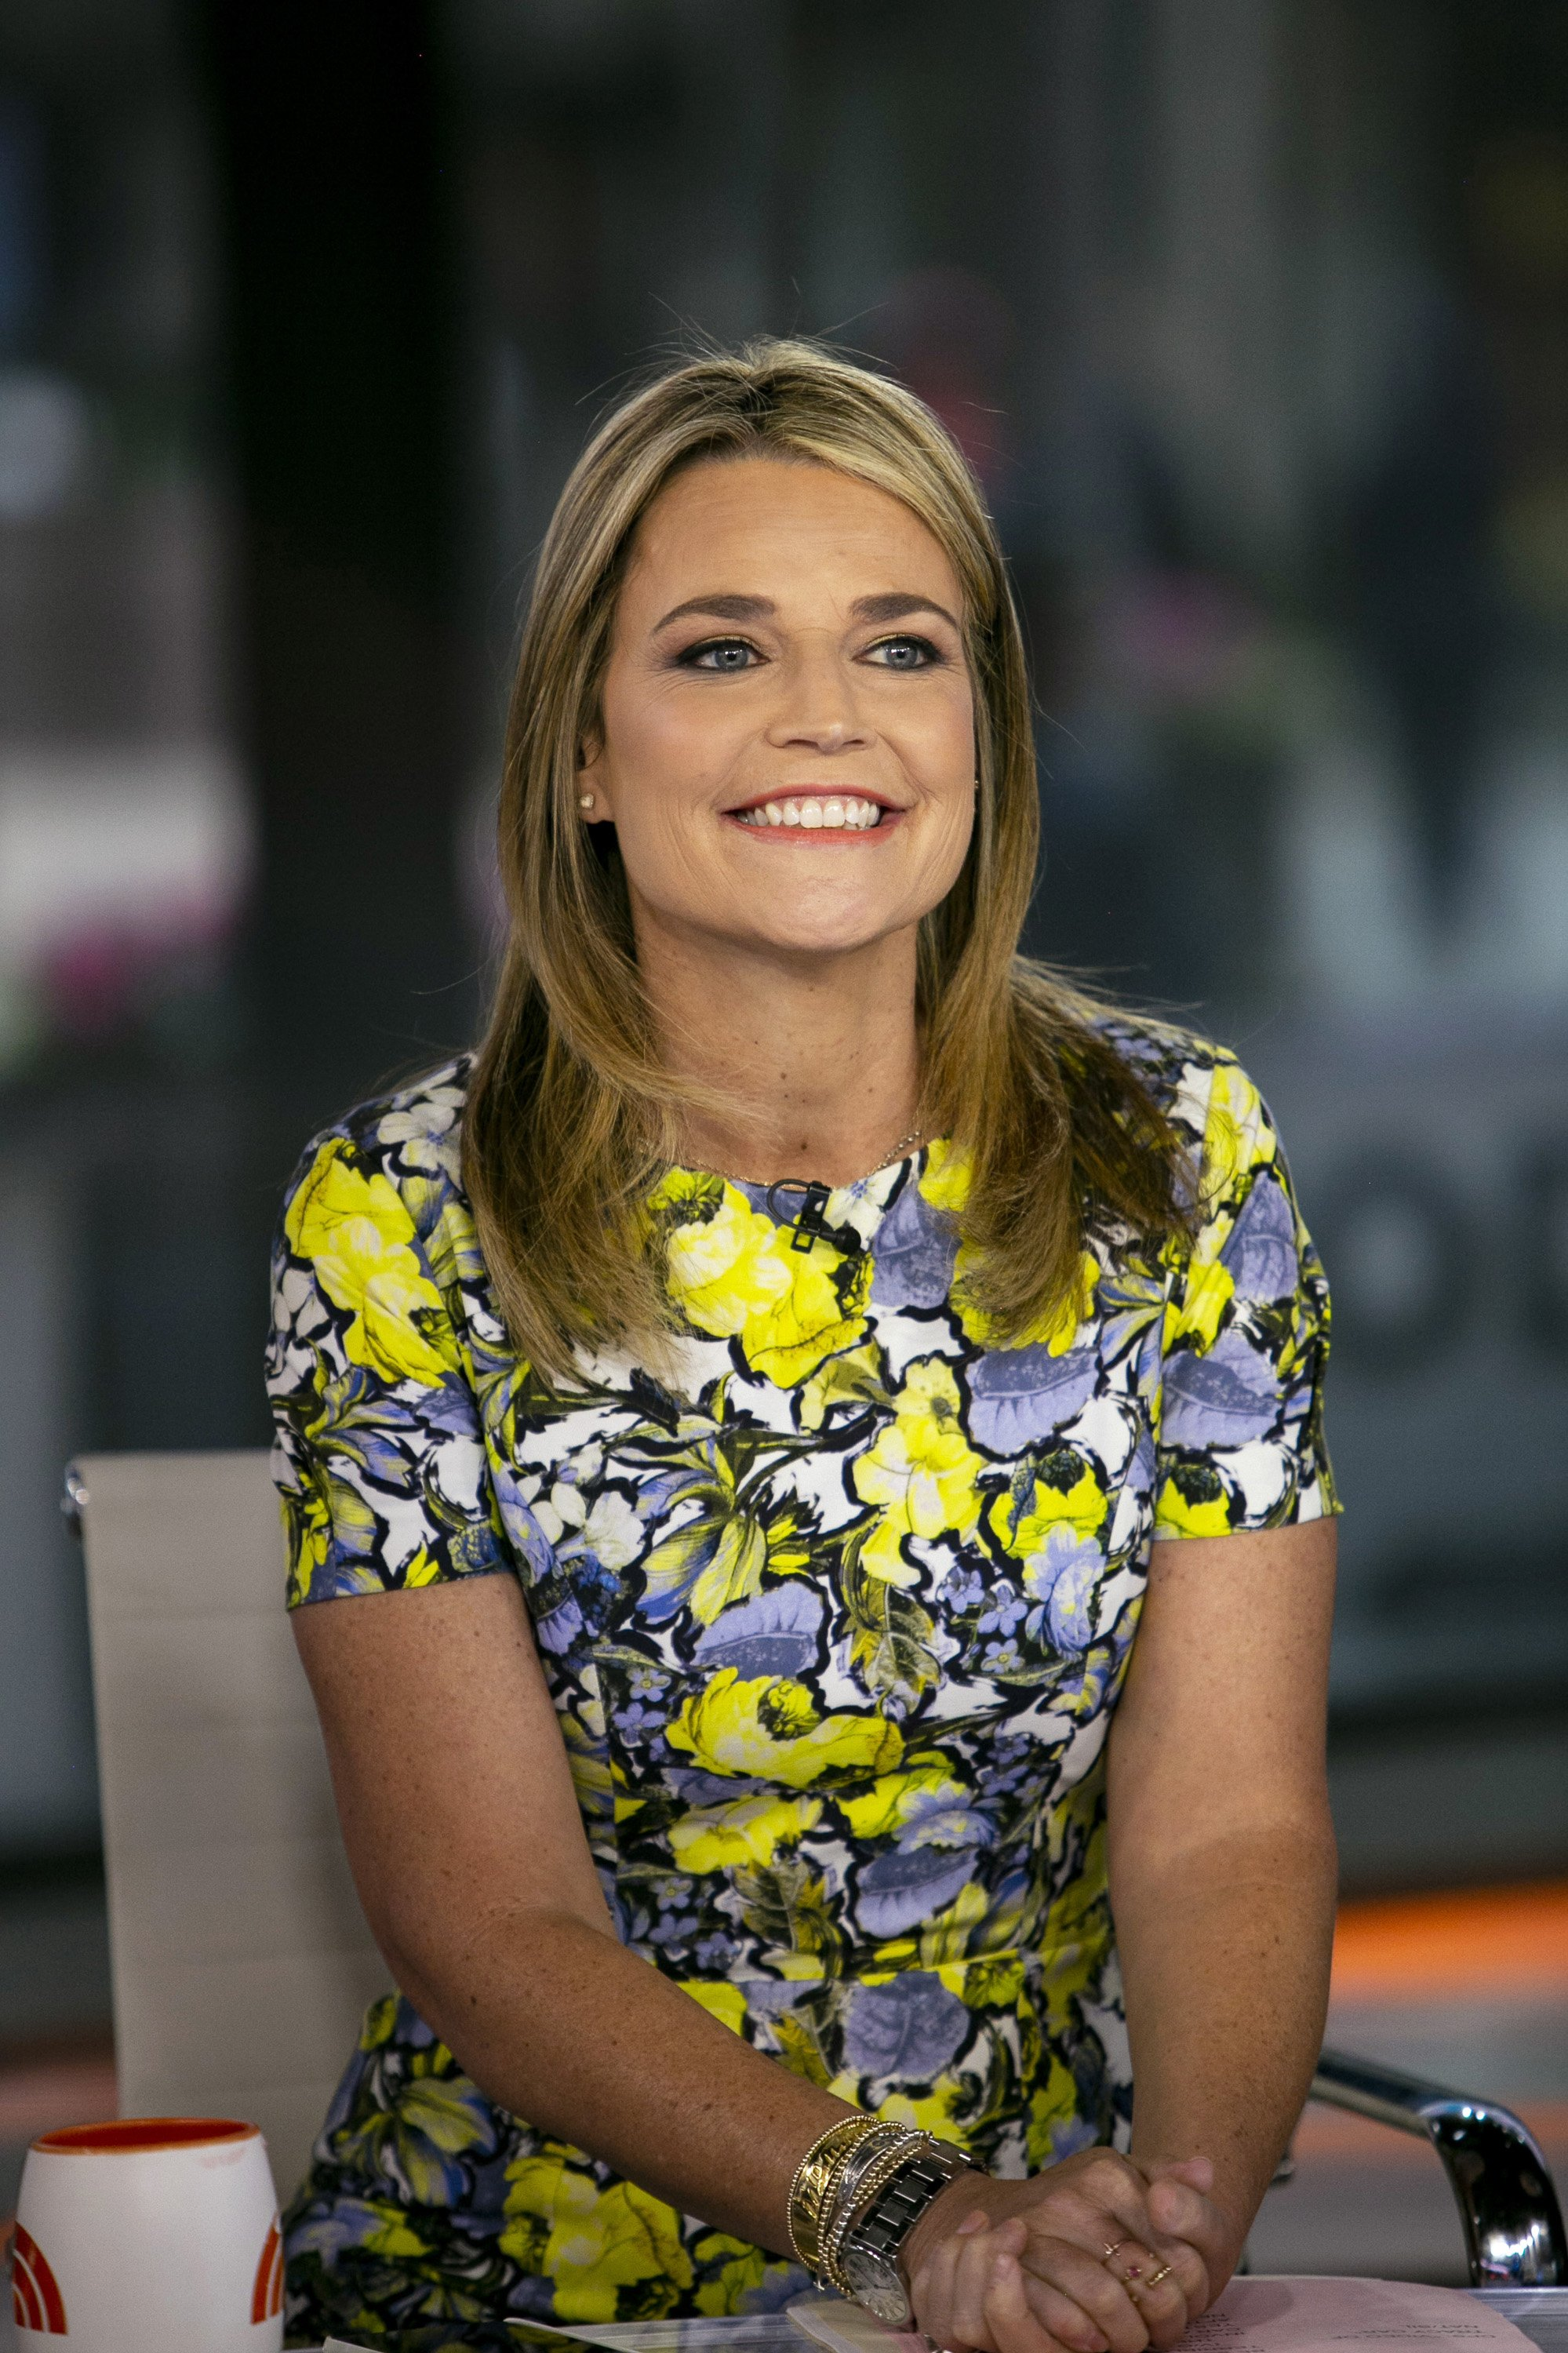 """Savannah Guthrie on the """"Today"""" show in 2019.   Photo: Getty Images"""